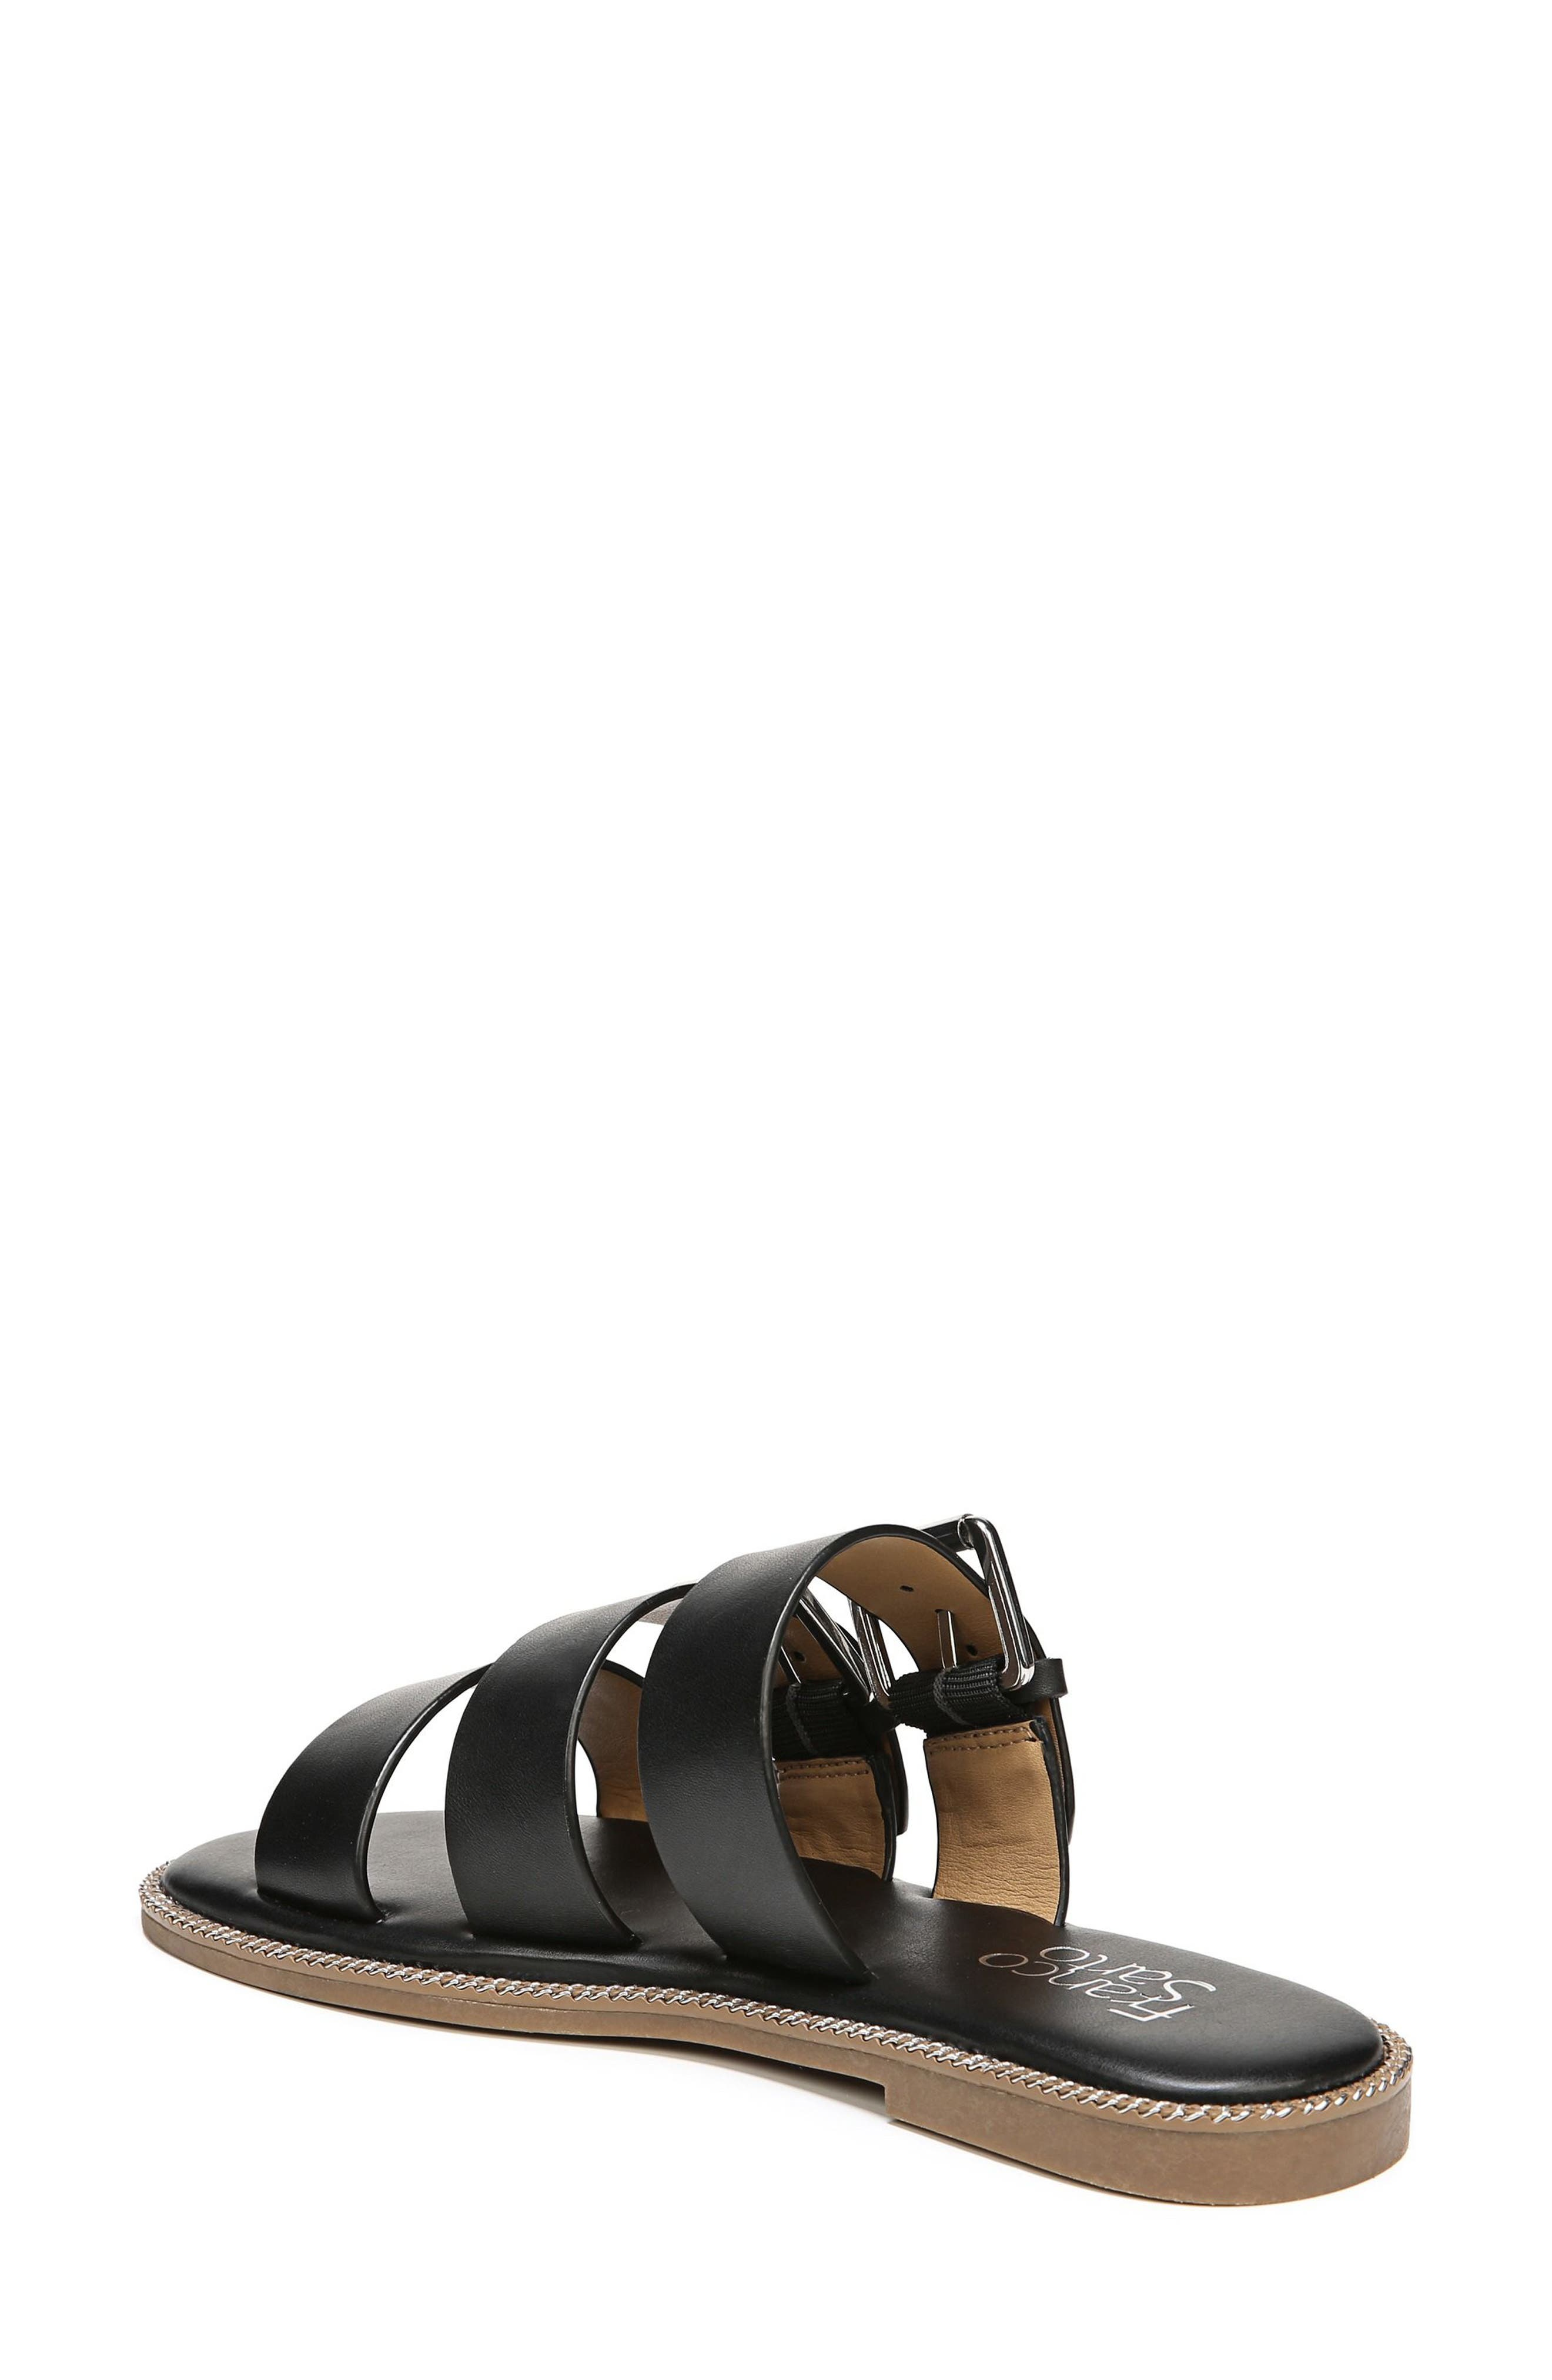 SARTO by Franco Sarto Kasa Three Strap Slide Sandal,                             Alternate thumbnail 2, color,                             BLACK LEATHER